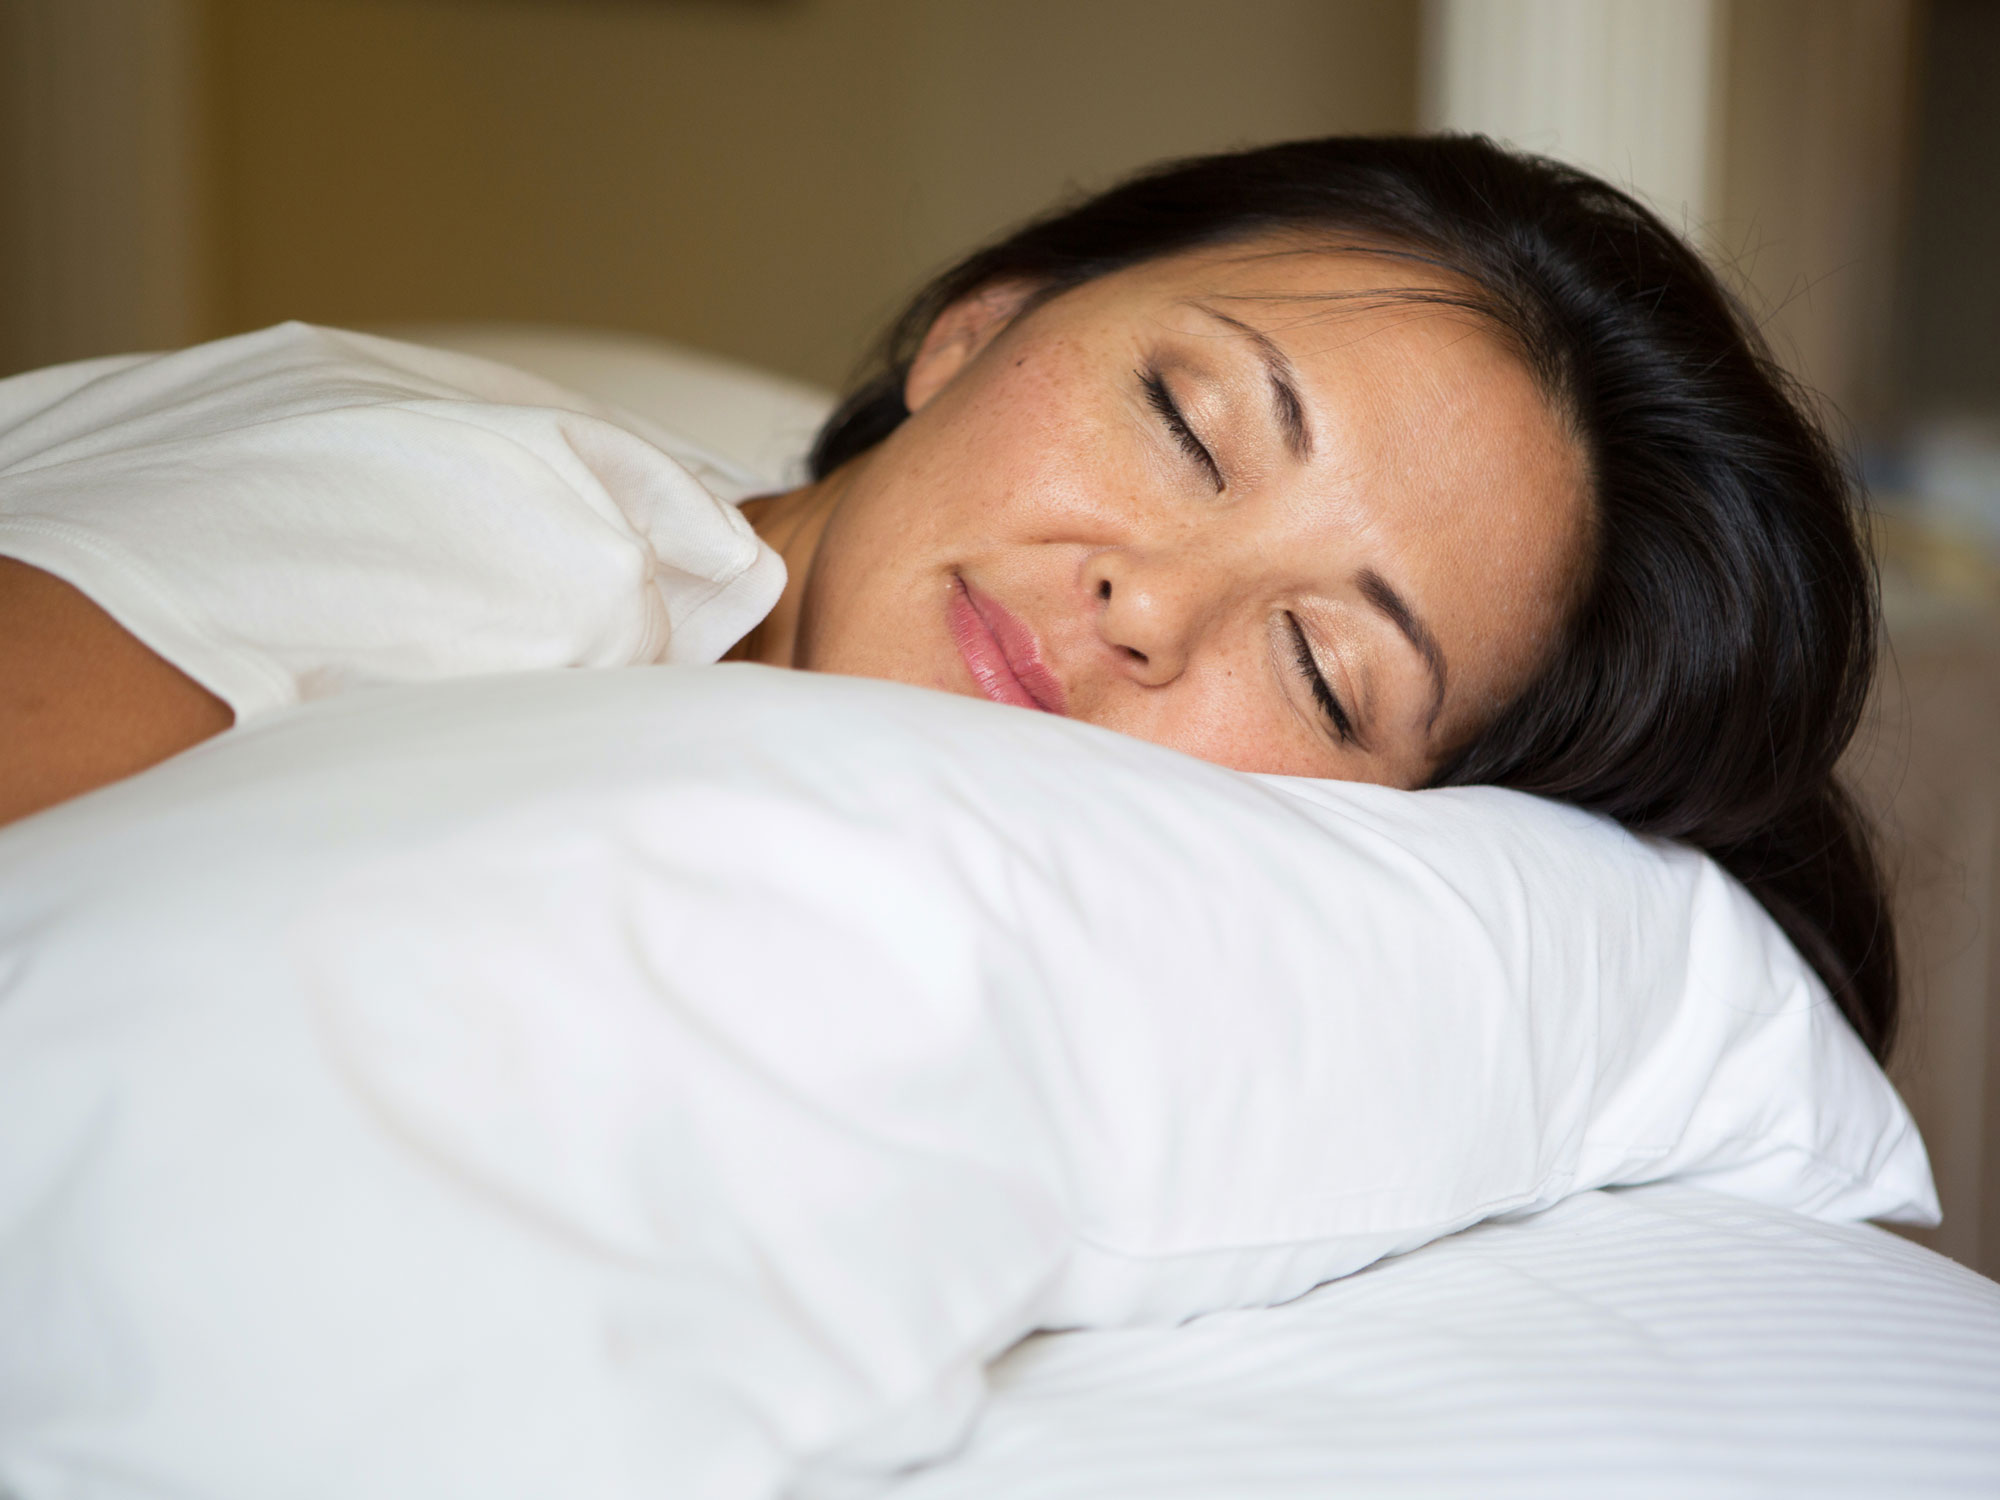 The cholesterol-lowering compound that improves sleep